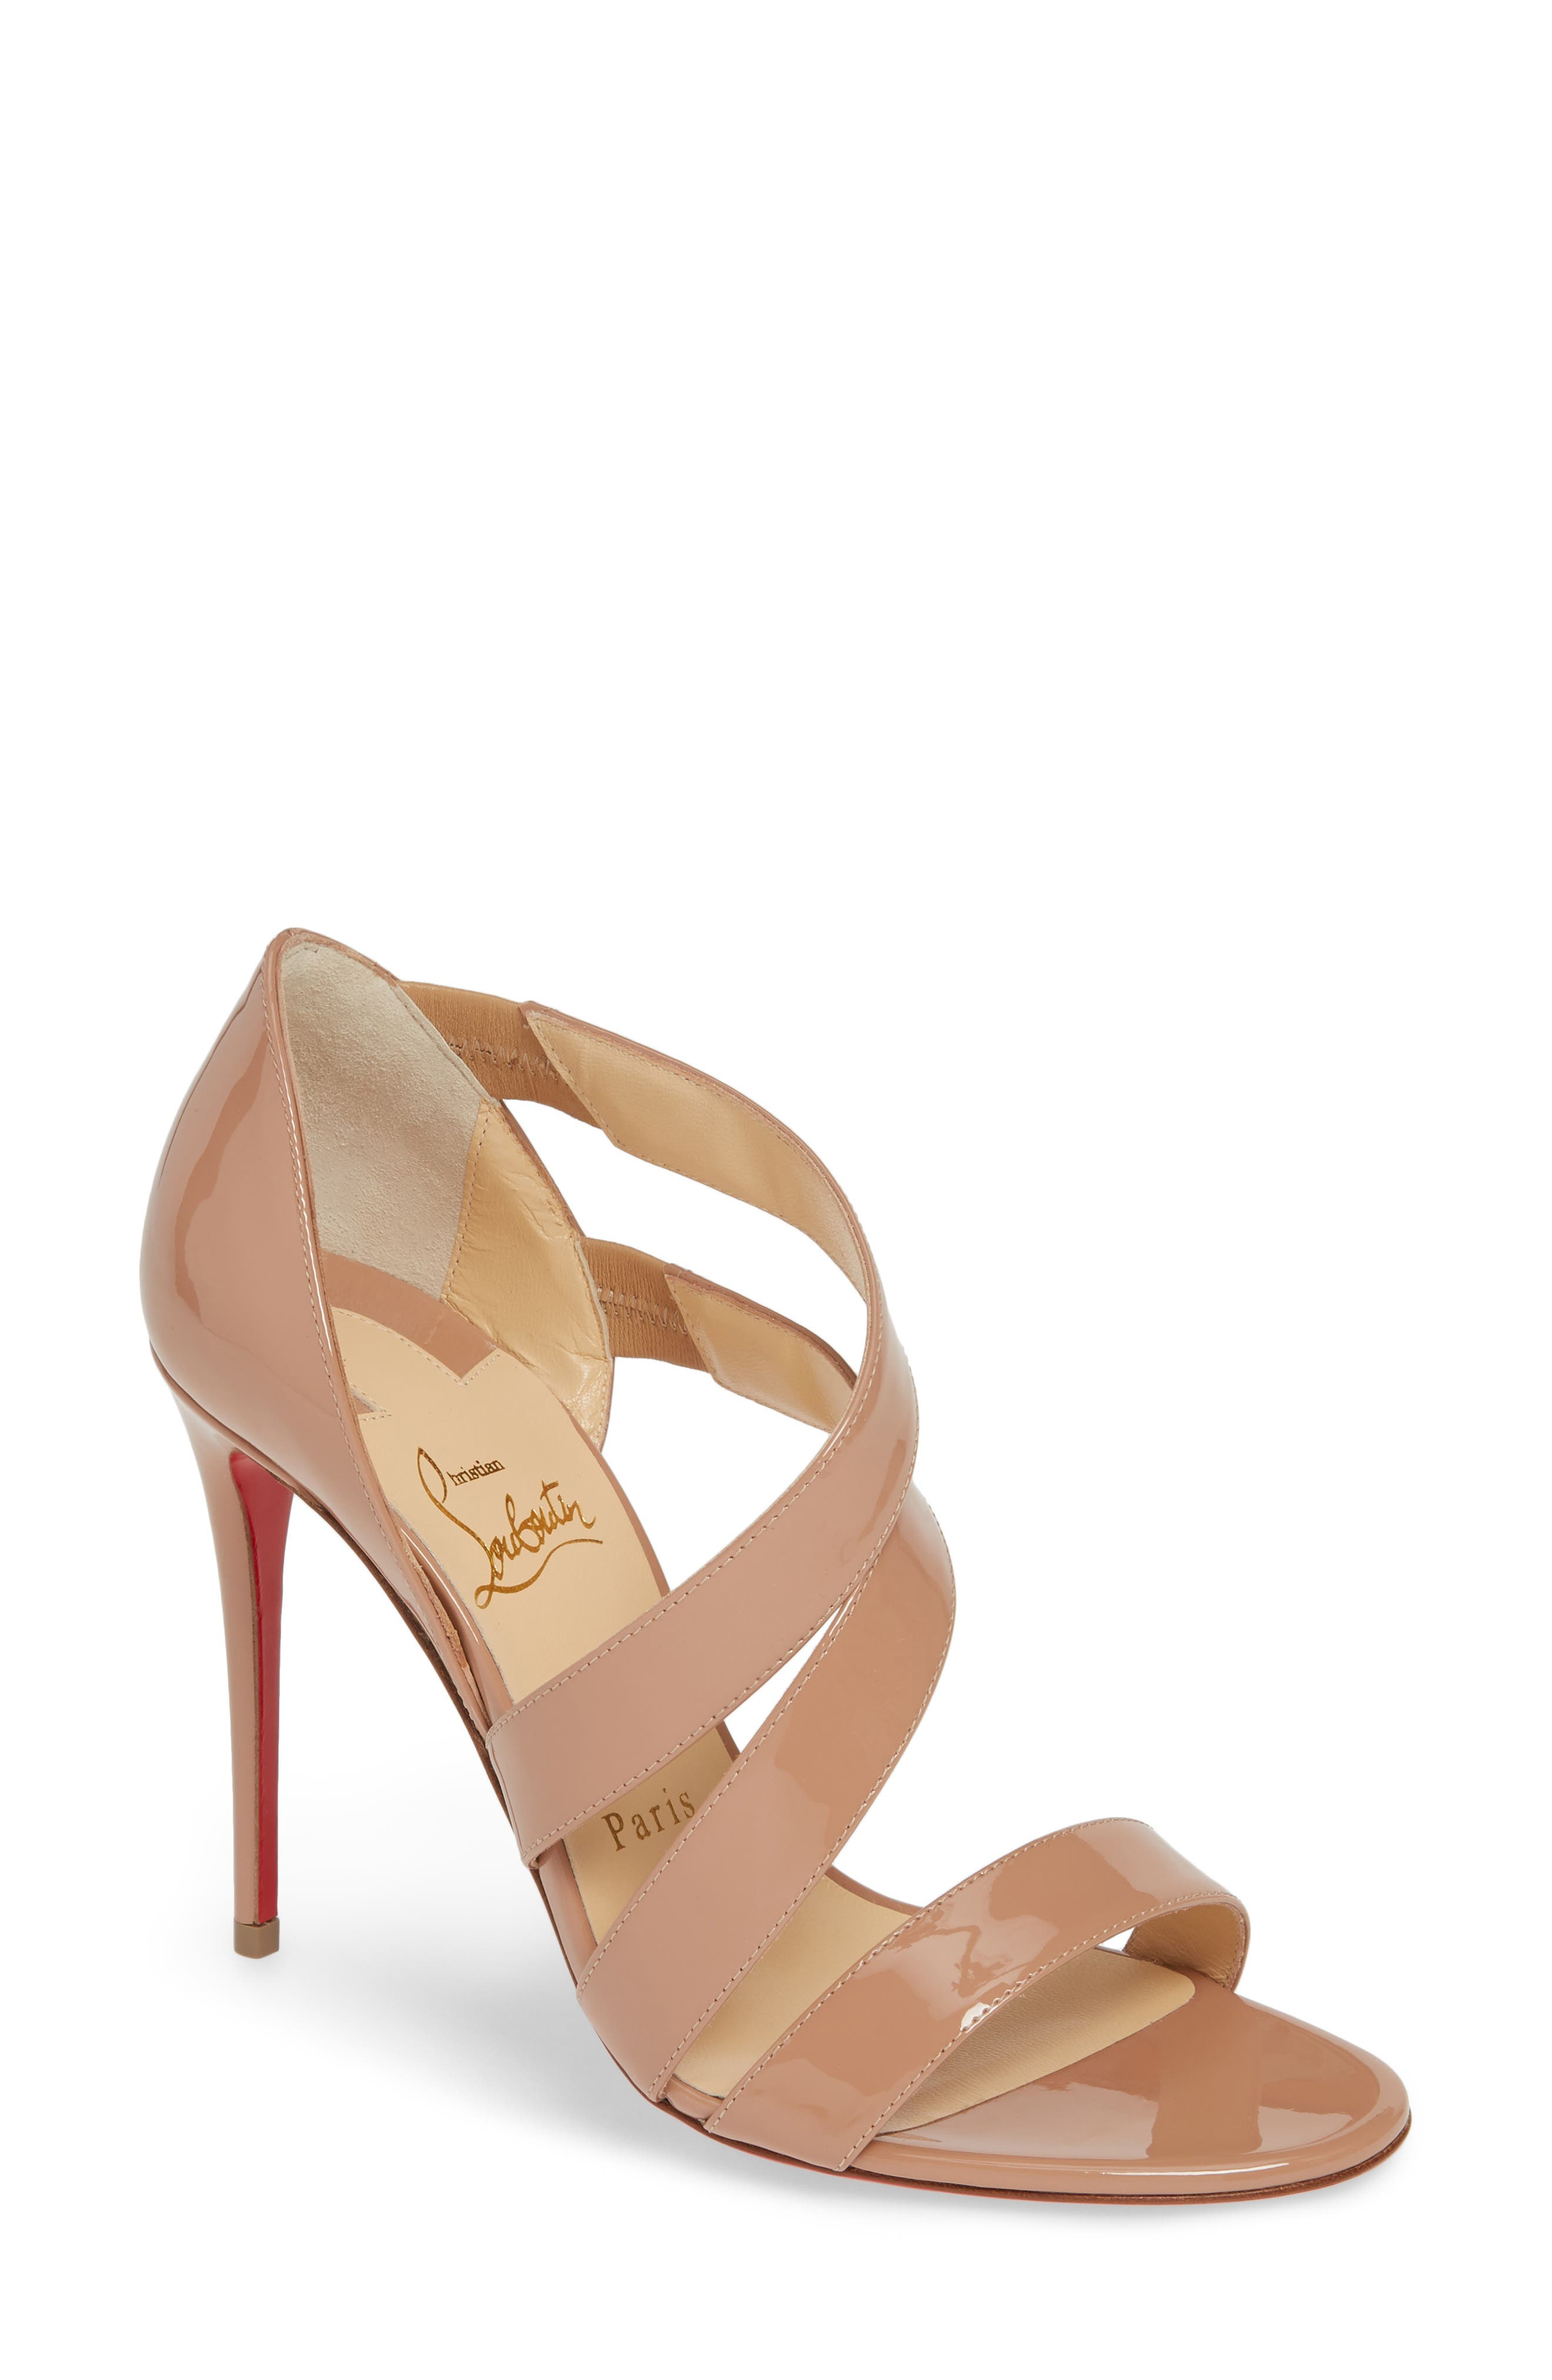 2e5144c08381 Christian Louboutin World Copine Asymmetrical Sandal In Nude Patent